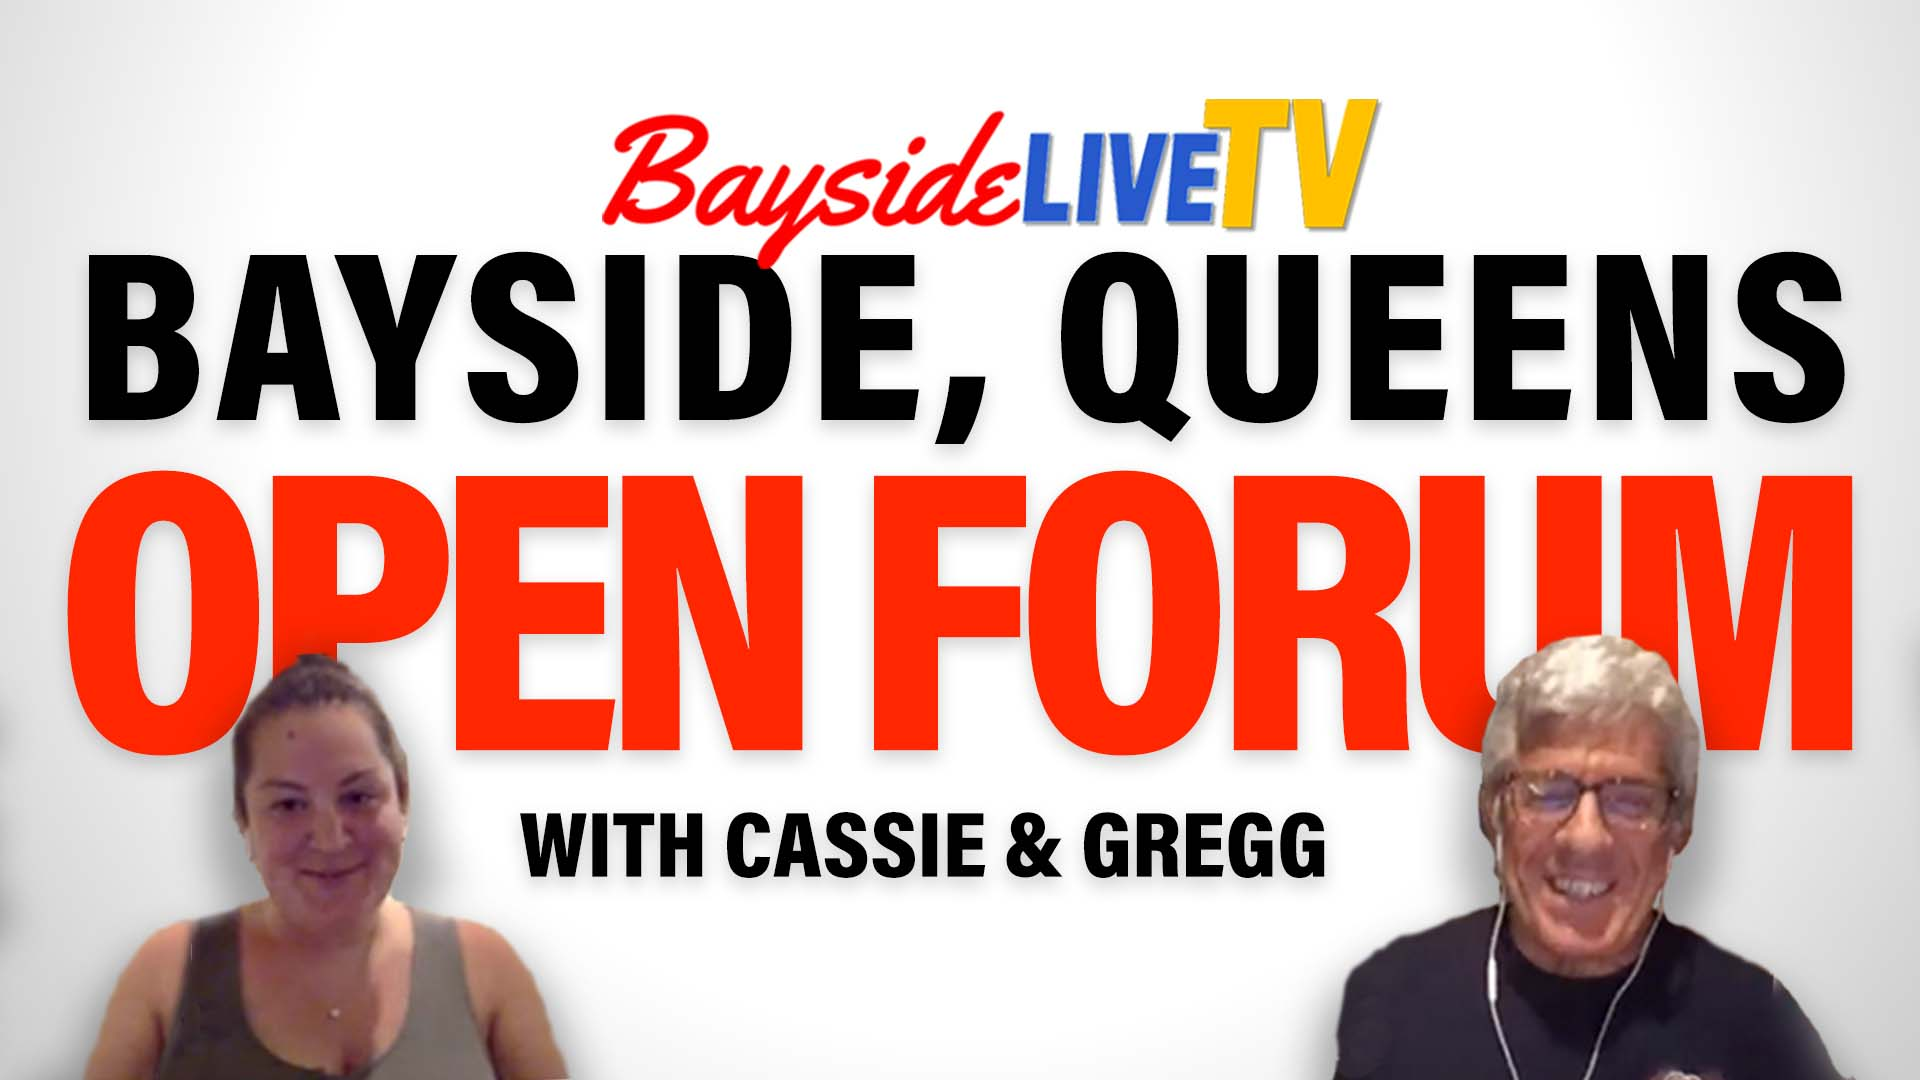 Bayside, Queens Open Forum – June 10, 2020